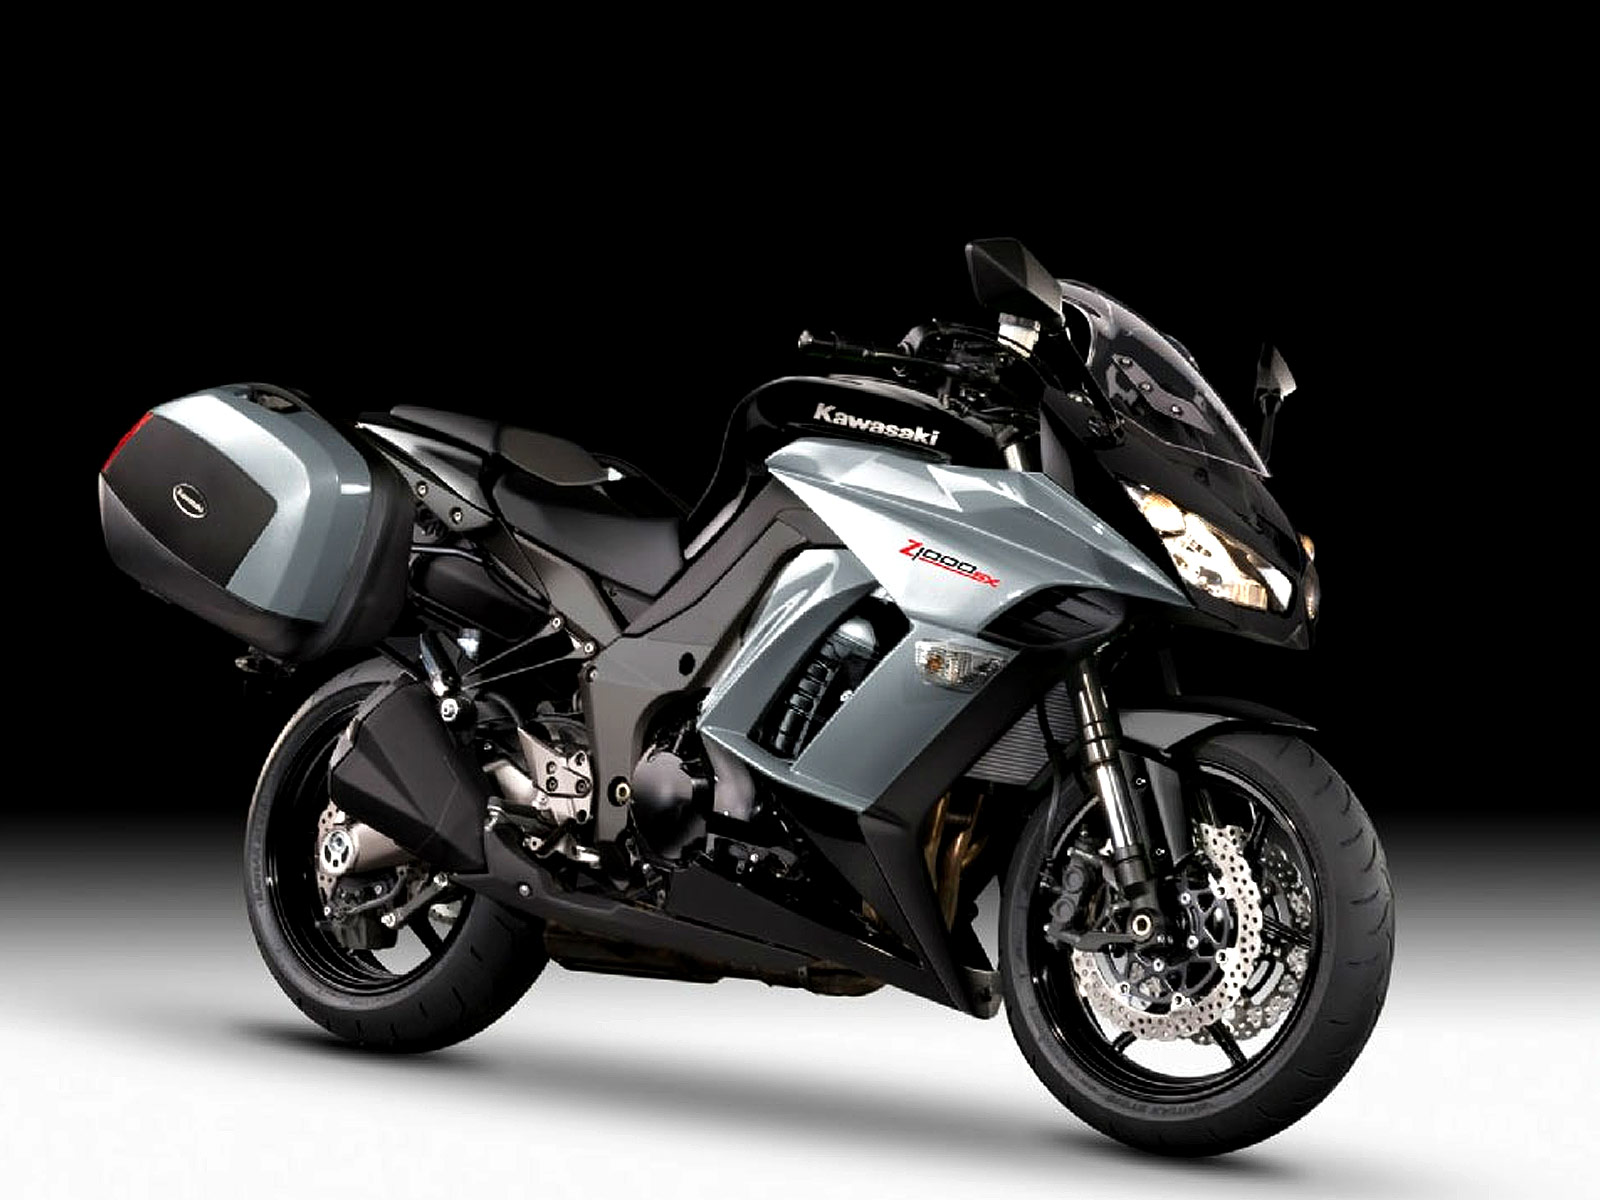 2012 kawasaki z1000sx tourer wallpaper review. Black Bedroom Furniture Sets. Home Design Ideas